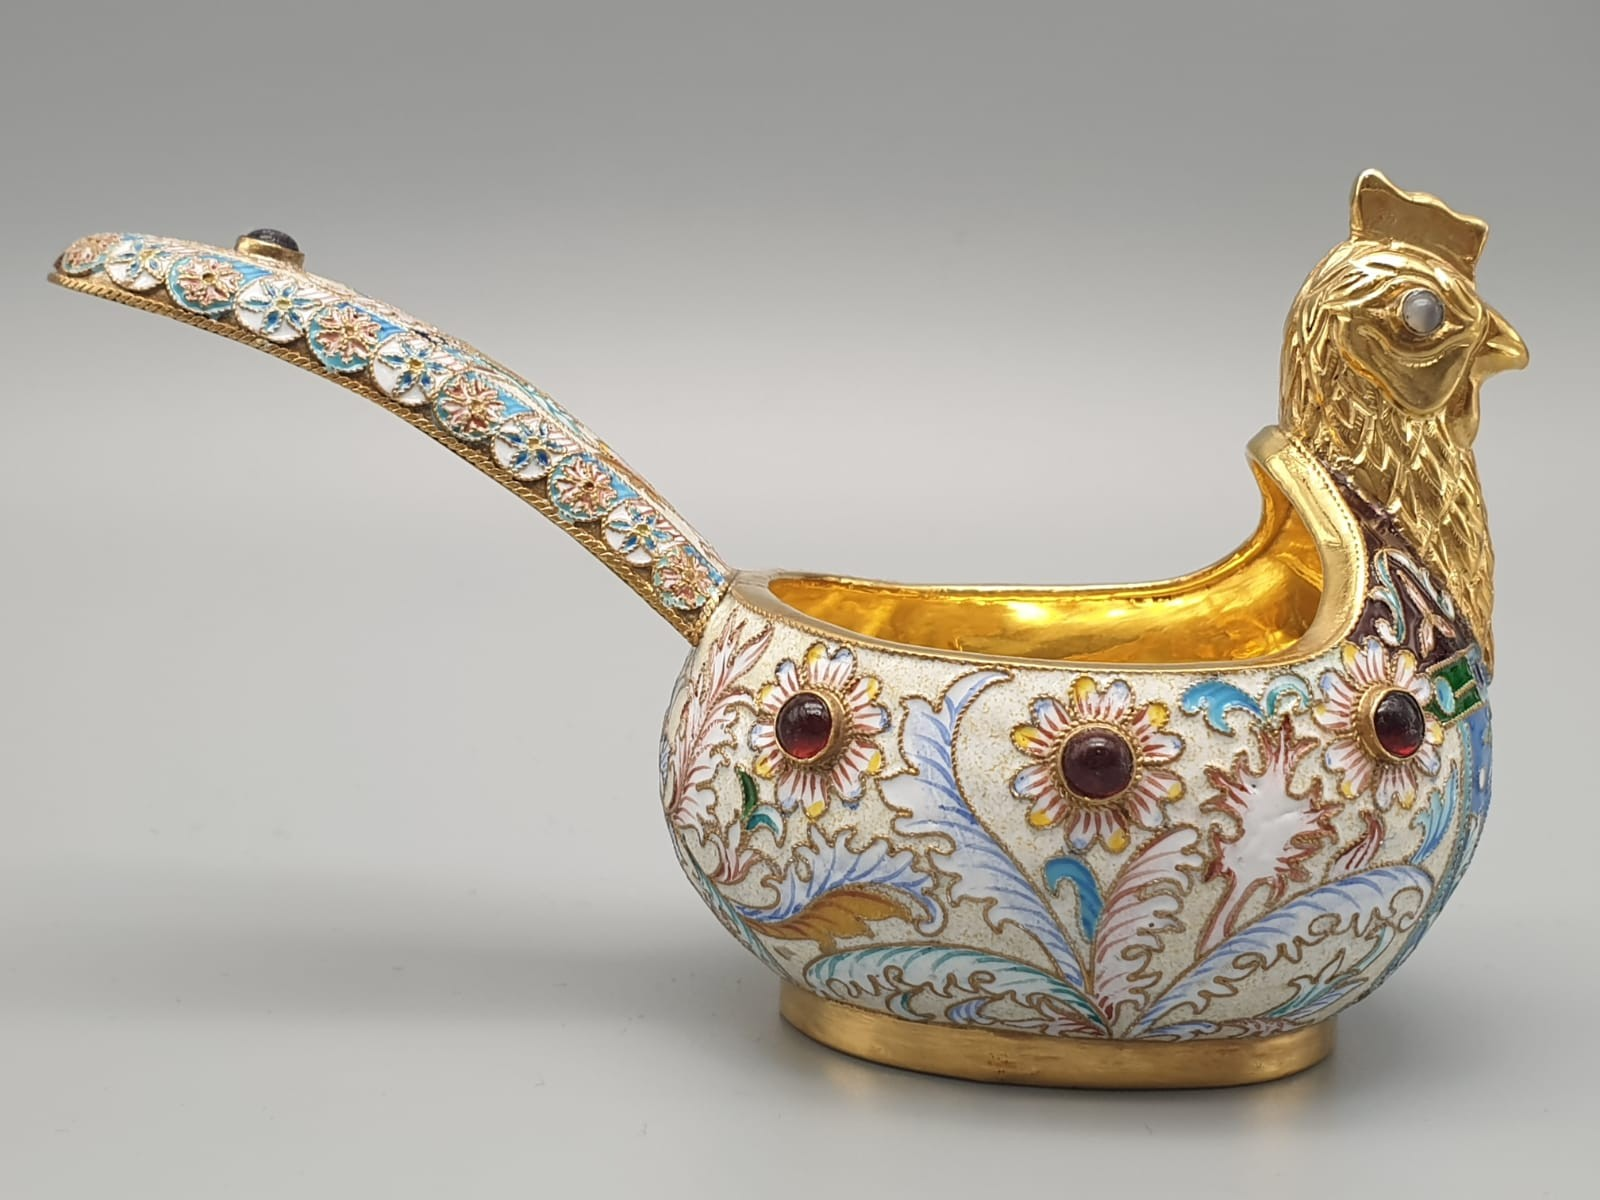 Pair of Russian 20th century silver enamel gemset kavosch bowl in the form of birds, an exquisite - Image 23 of 29